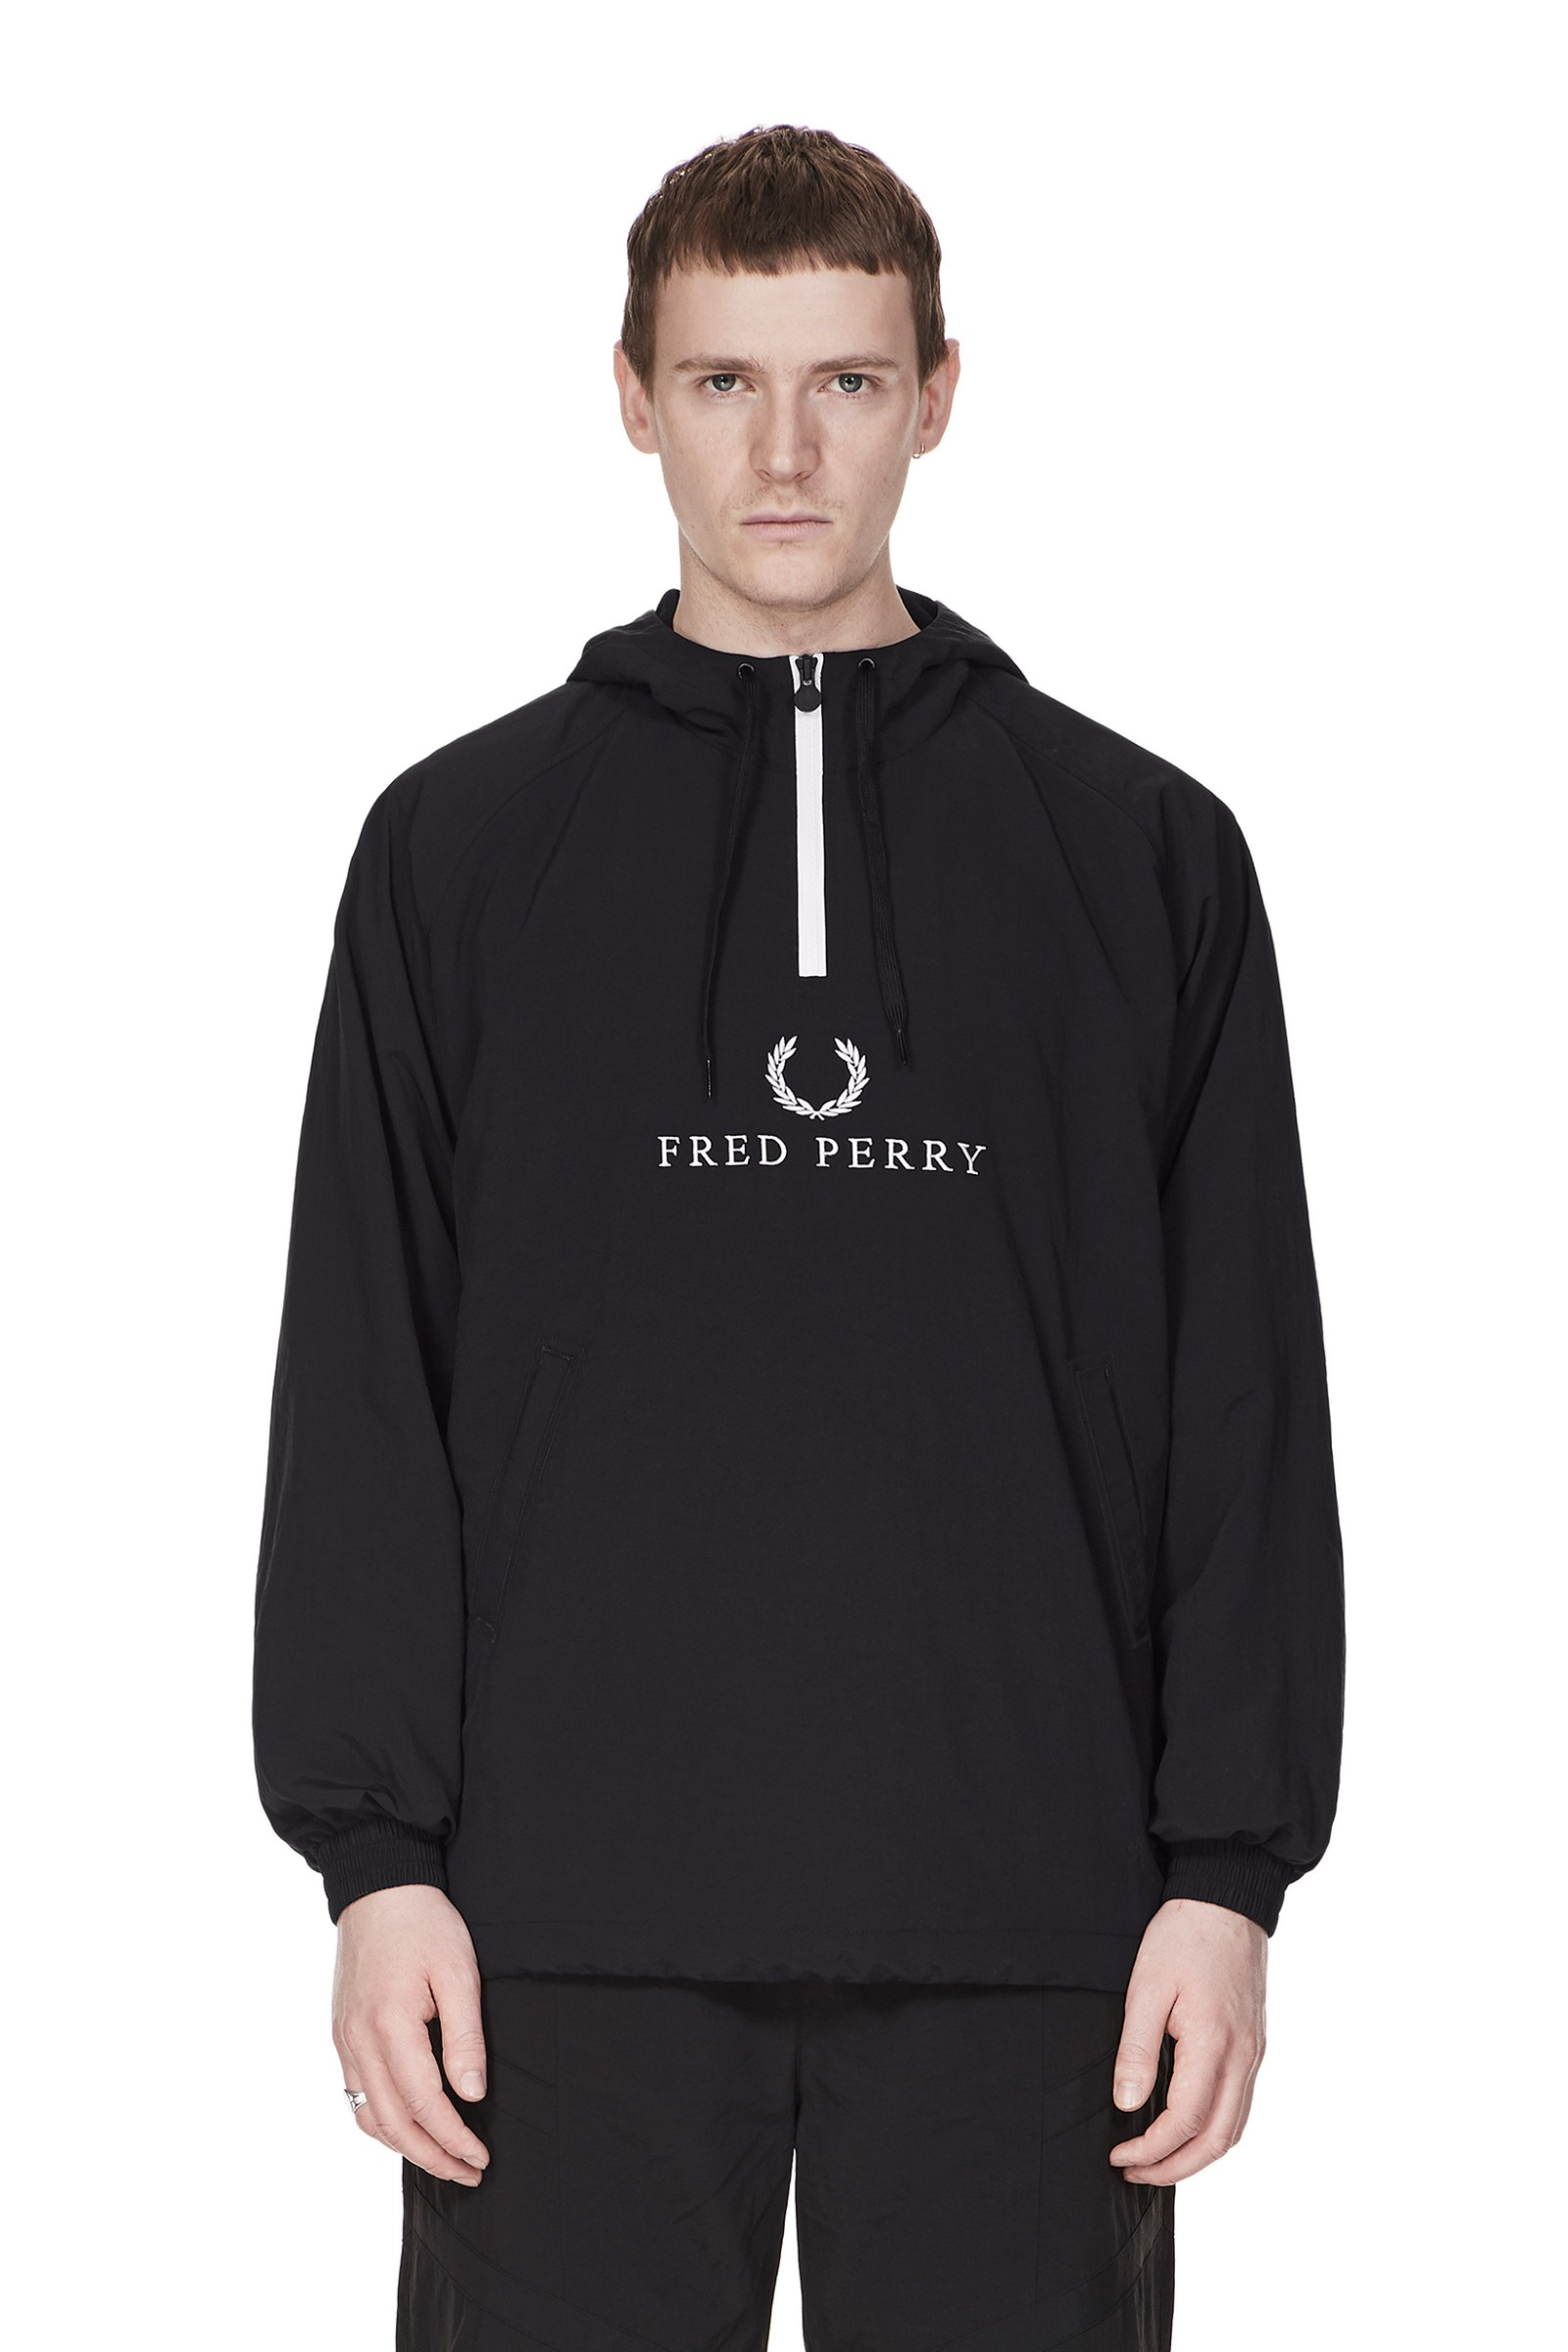 d9c0b5a23cc1 Fred Perry - Sports Authentic Embroidered Half-Zip Jacket Black